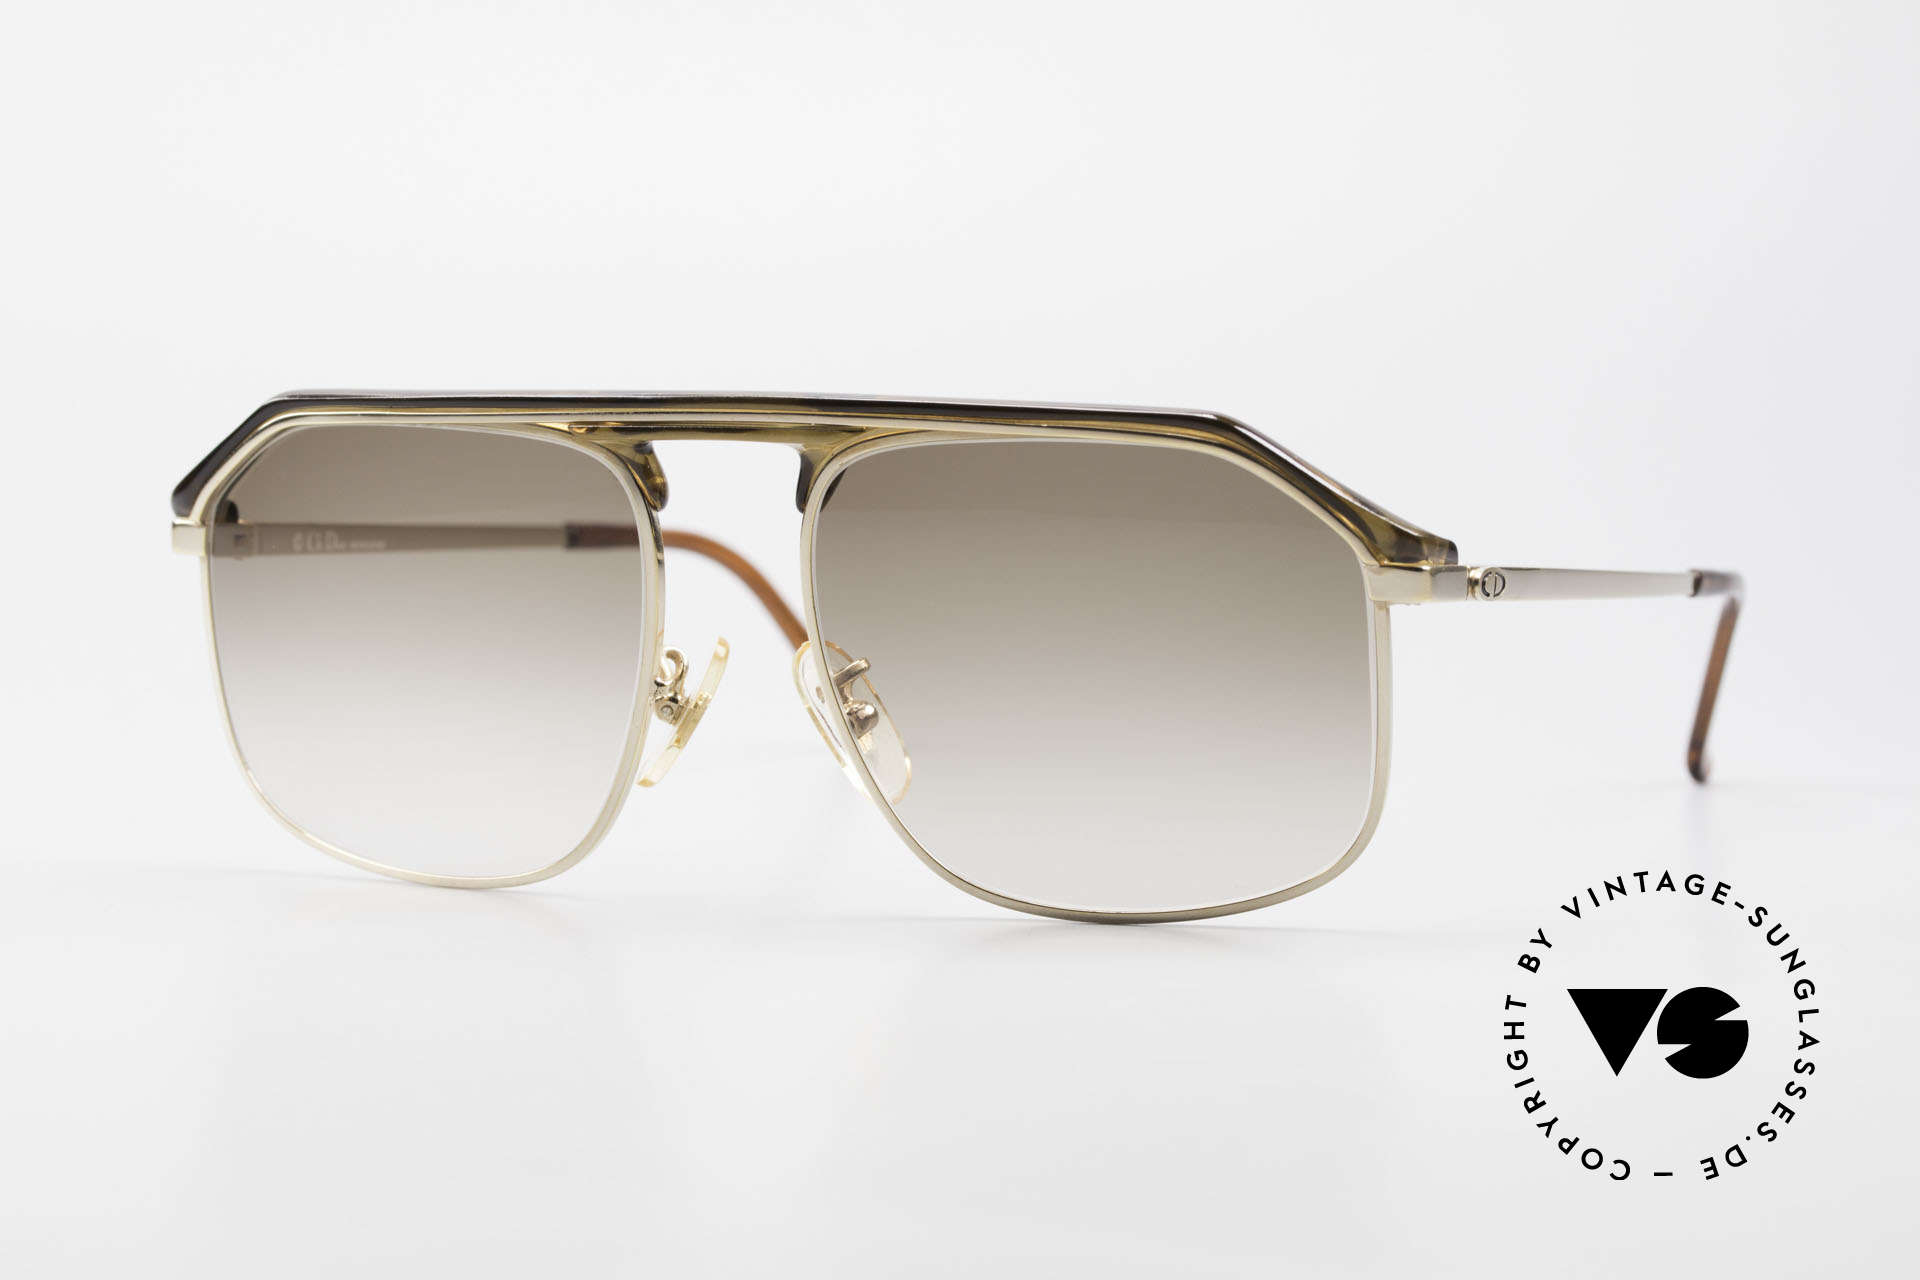 Christian Dior 2135A 1980's Dior Monsieur Series, classic C. Dior gentlemen´s sunglasses from the 80's, Made for Men